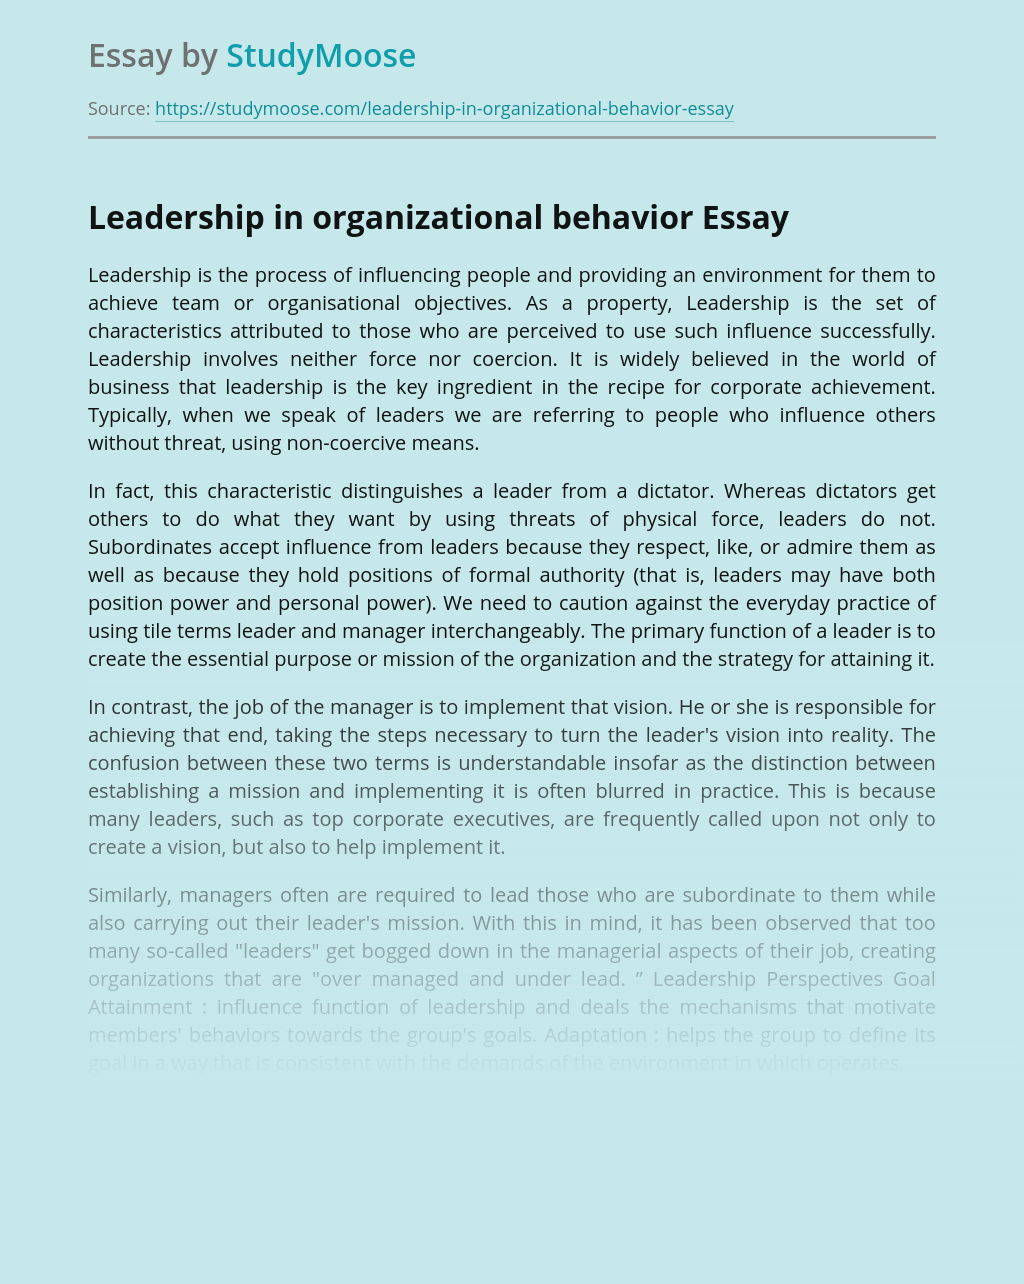 Leadership in organizational behavior